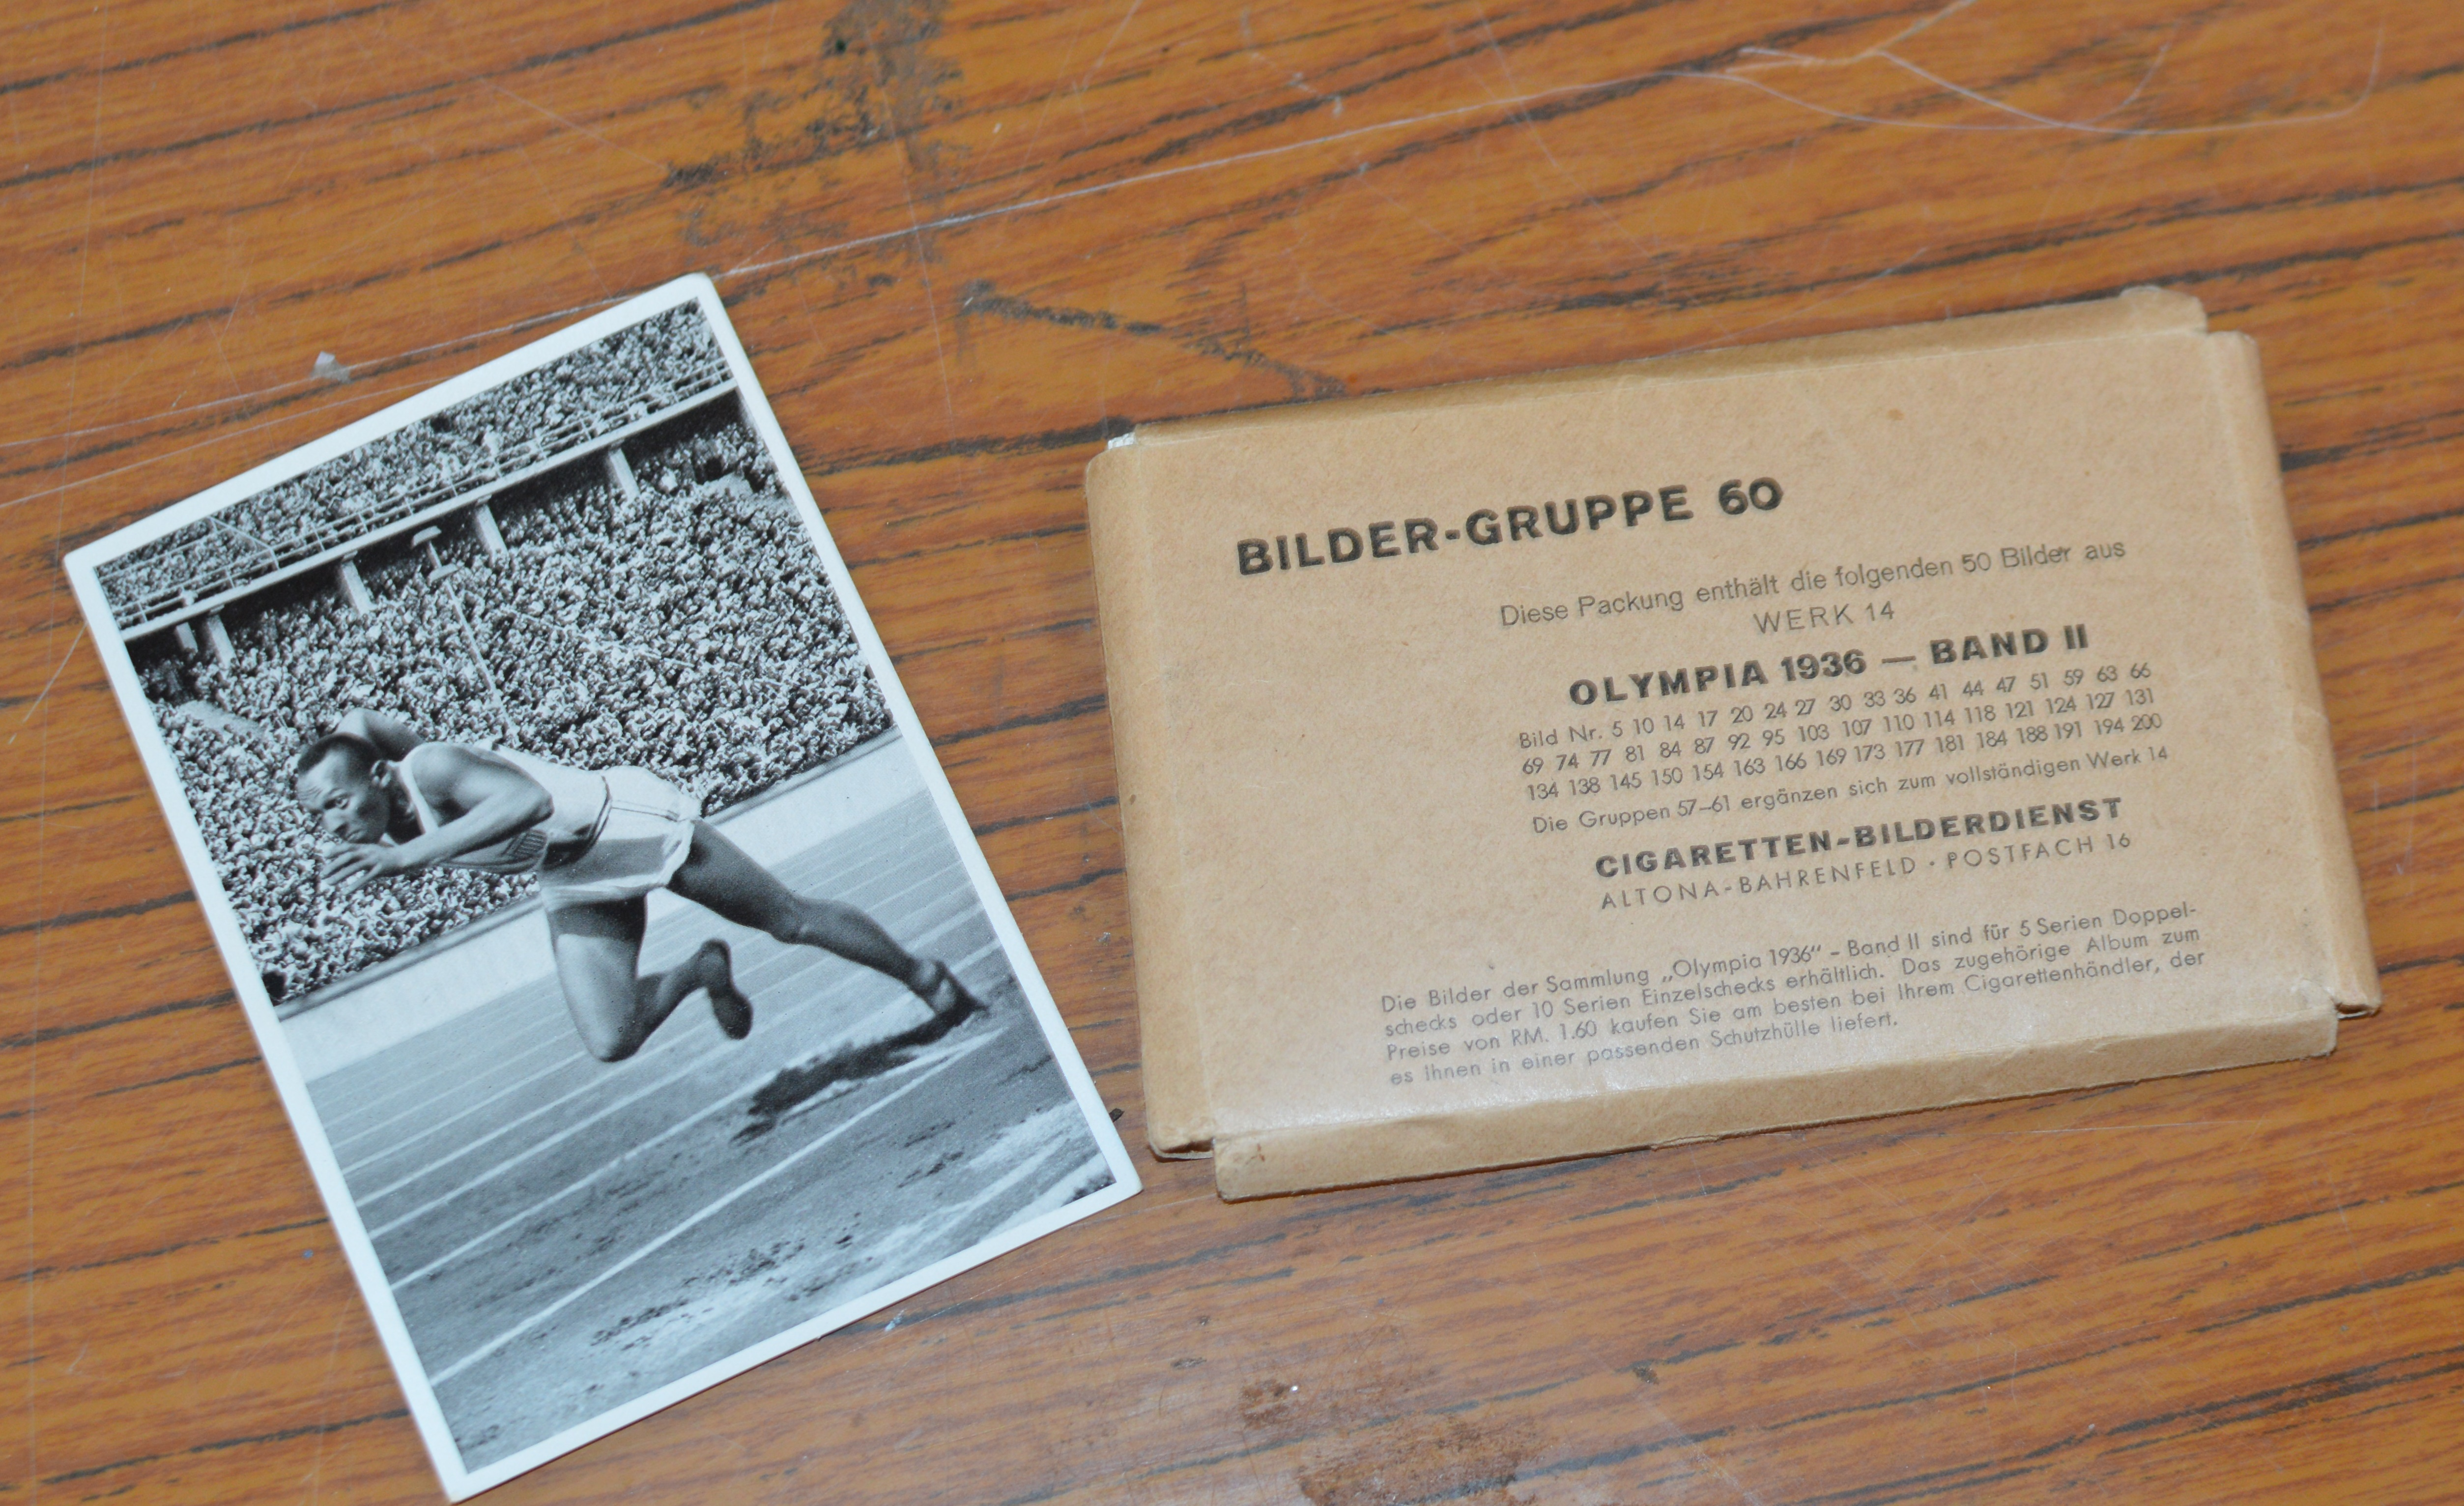 OLYMPIC GAMES BERLIN 1934 PROMOTIONAL CARDS, WITH FAMOUS US ATHLETE JESSIE OWEN